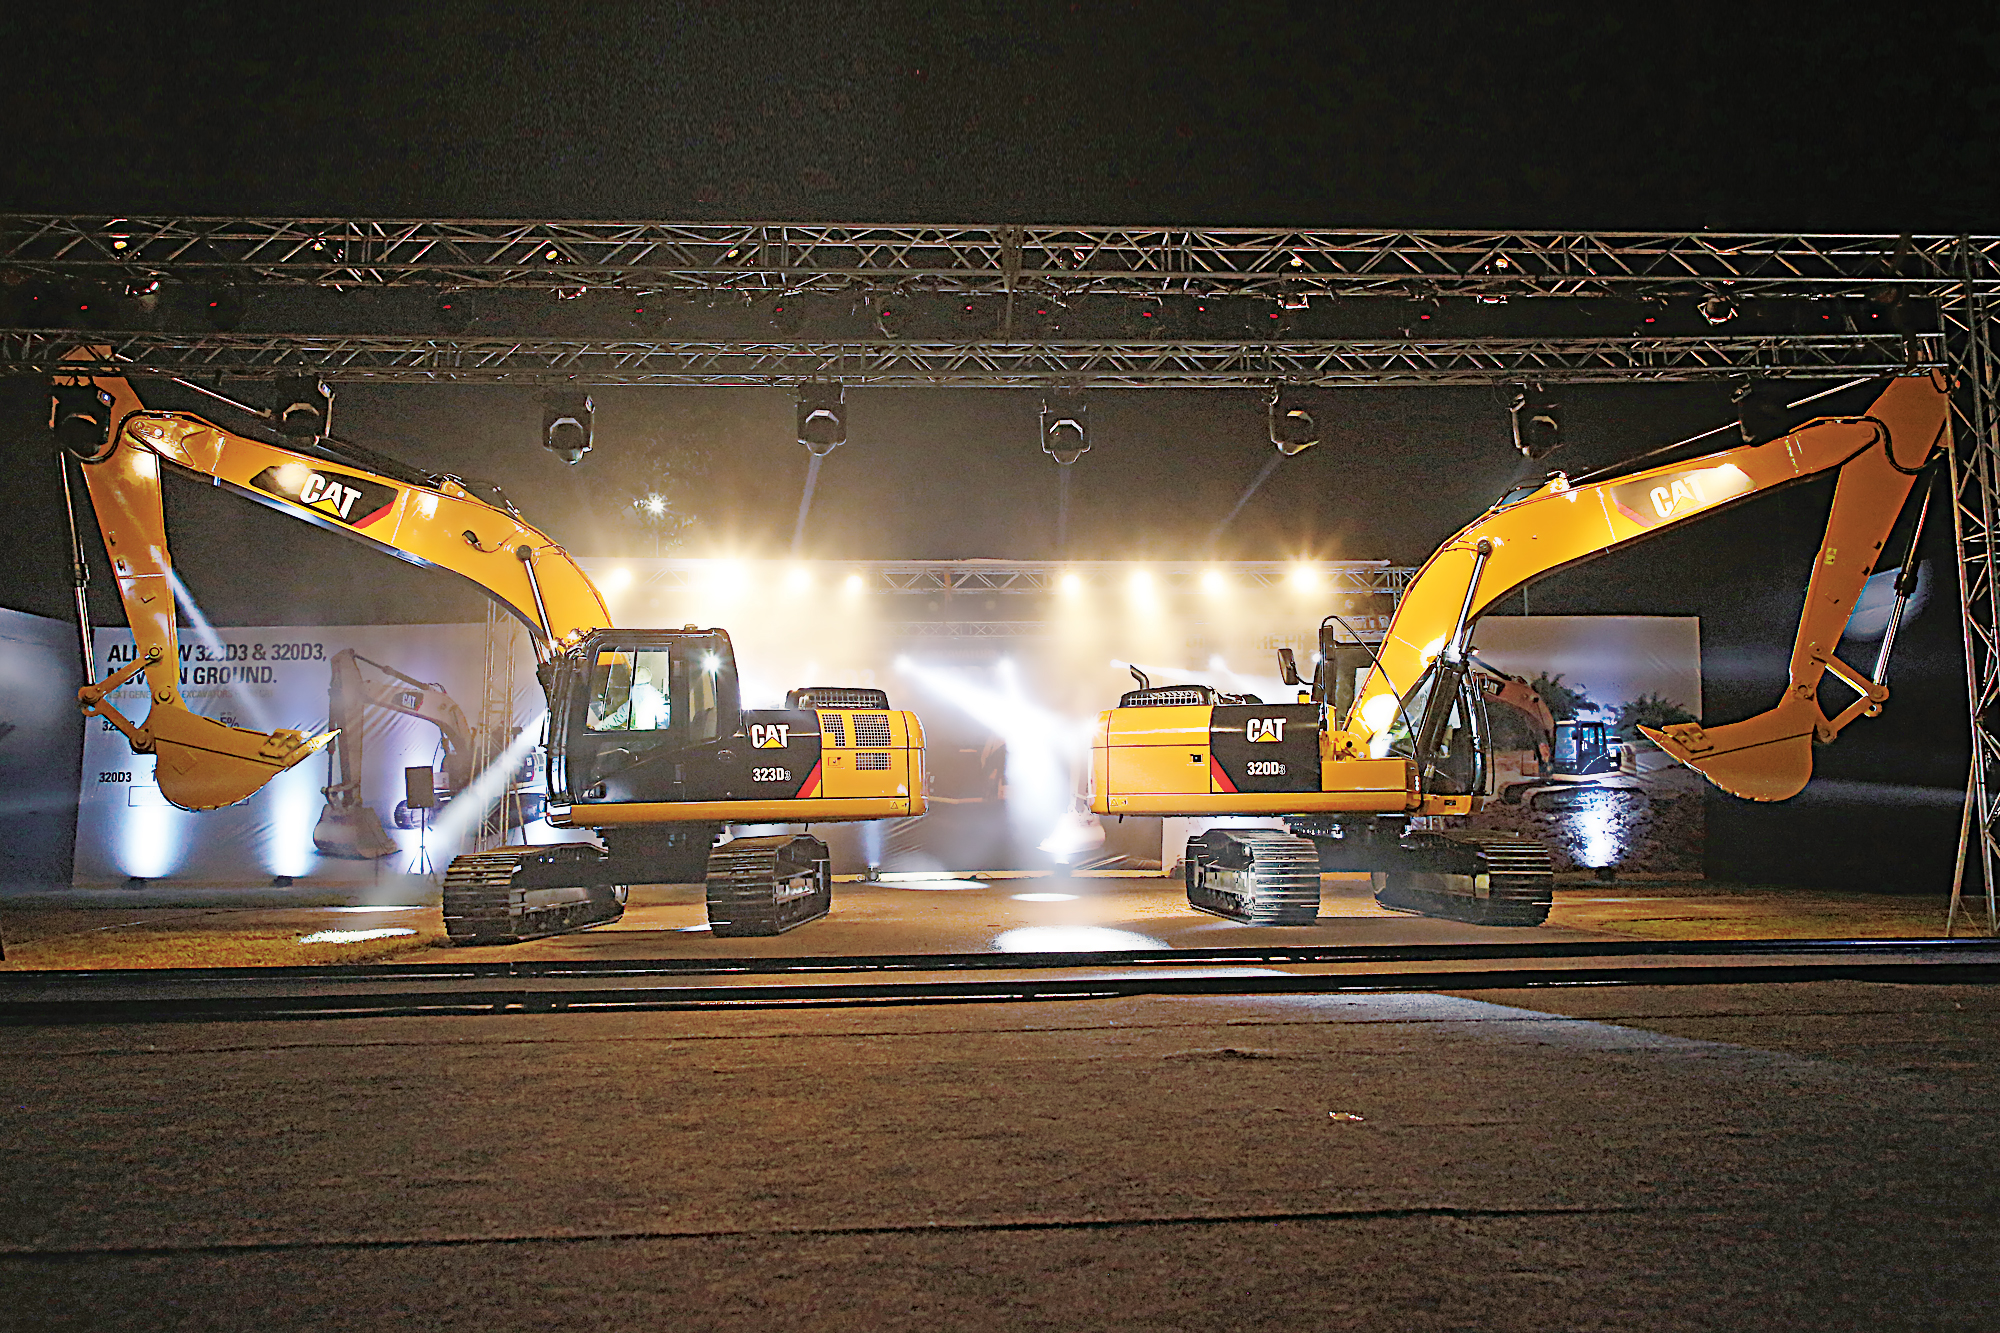 Caterpillar: aiding productivity, fuel efficiency, lower costs